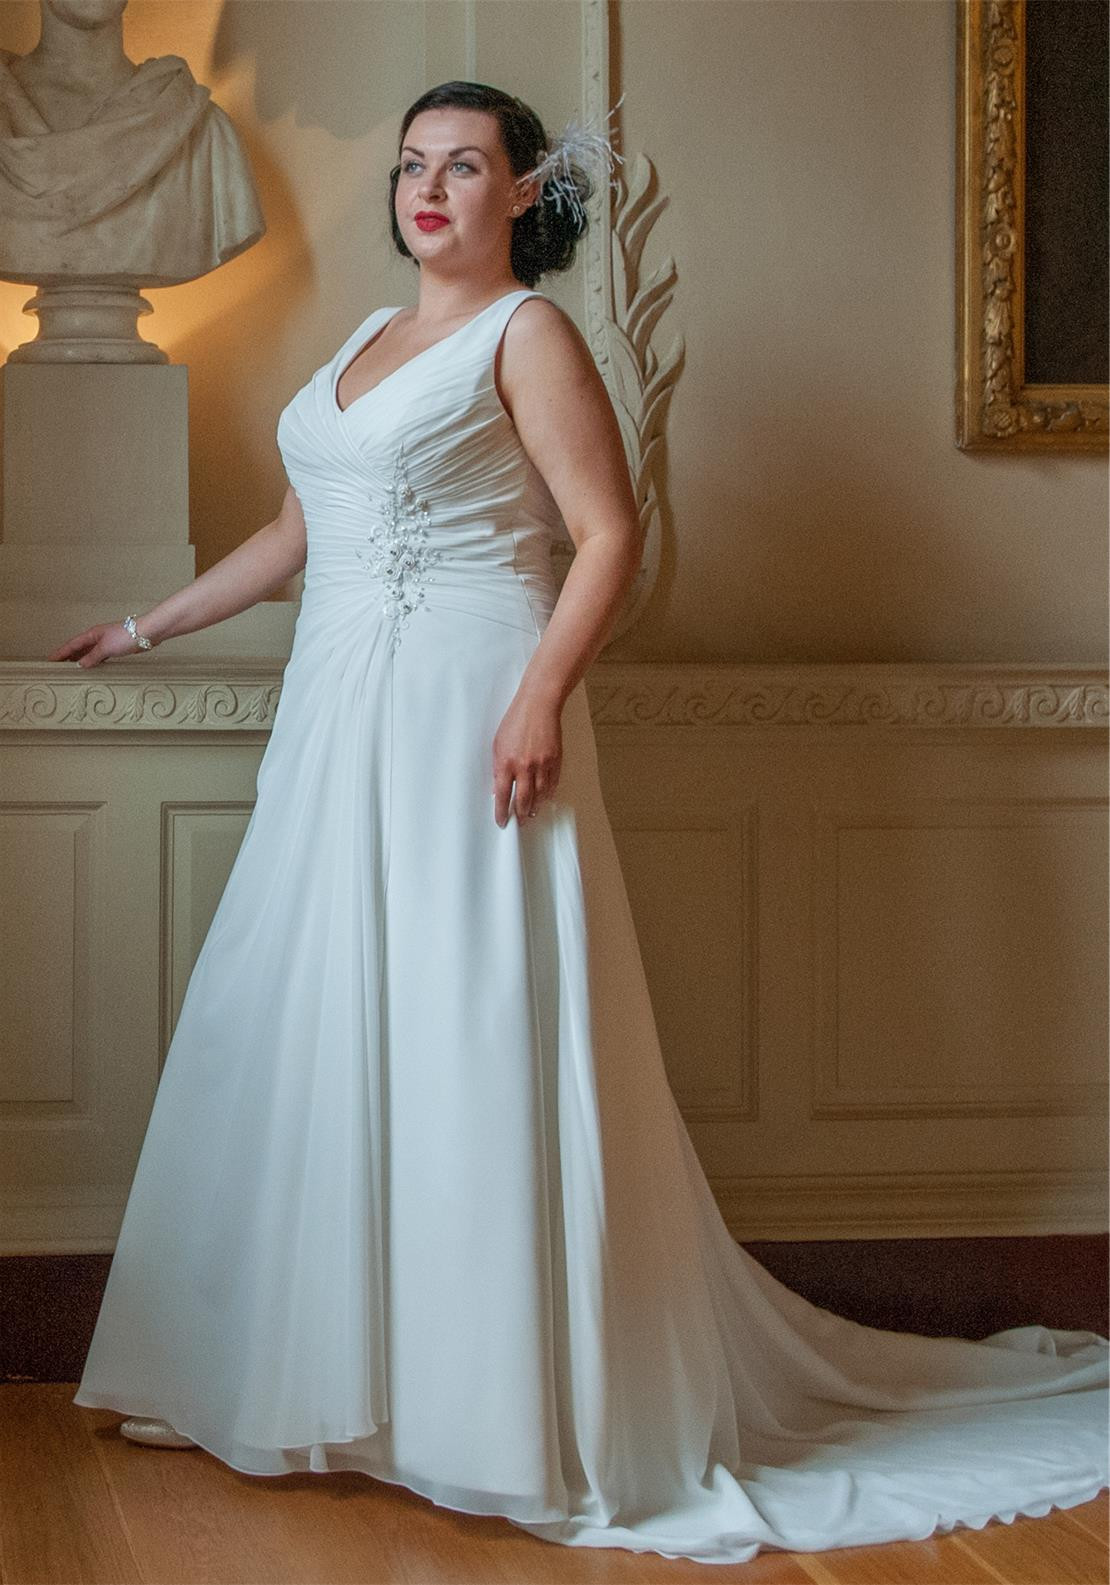 Special Day Bb15115 Wedding Dress Uk Size 22 59 Off